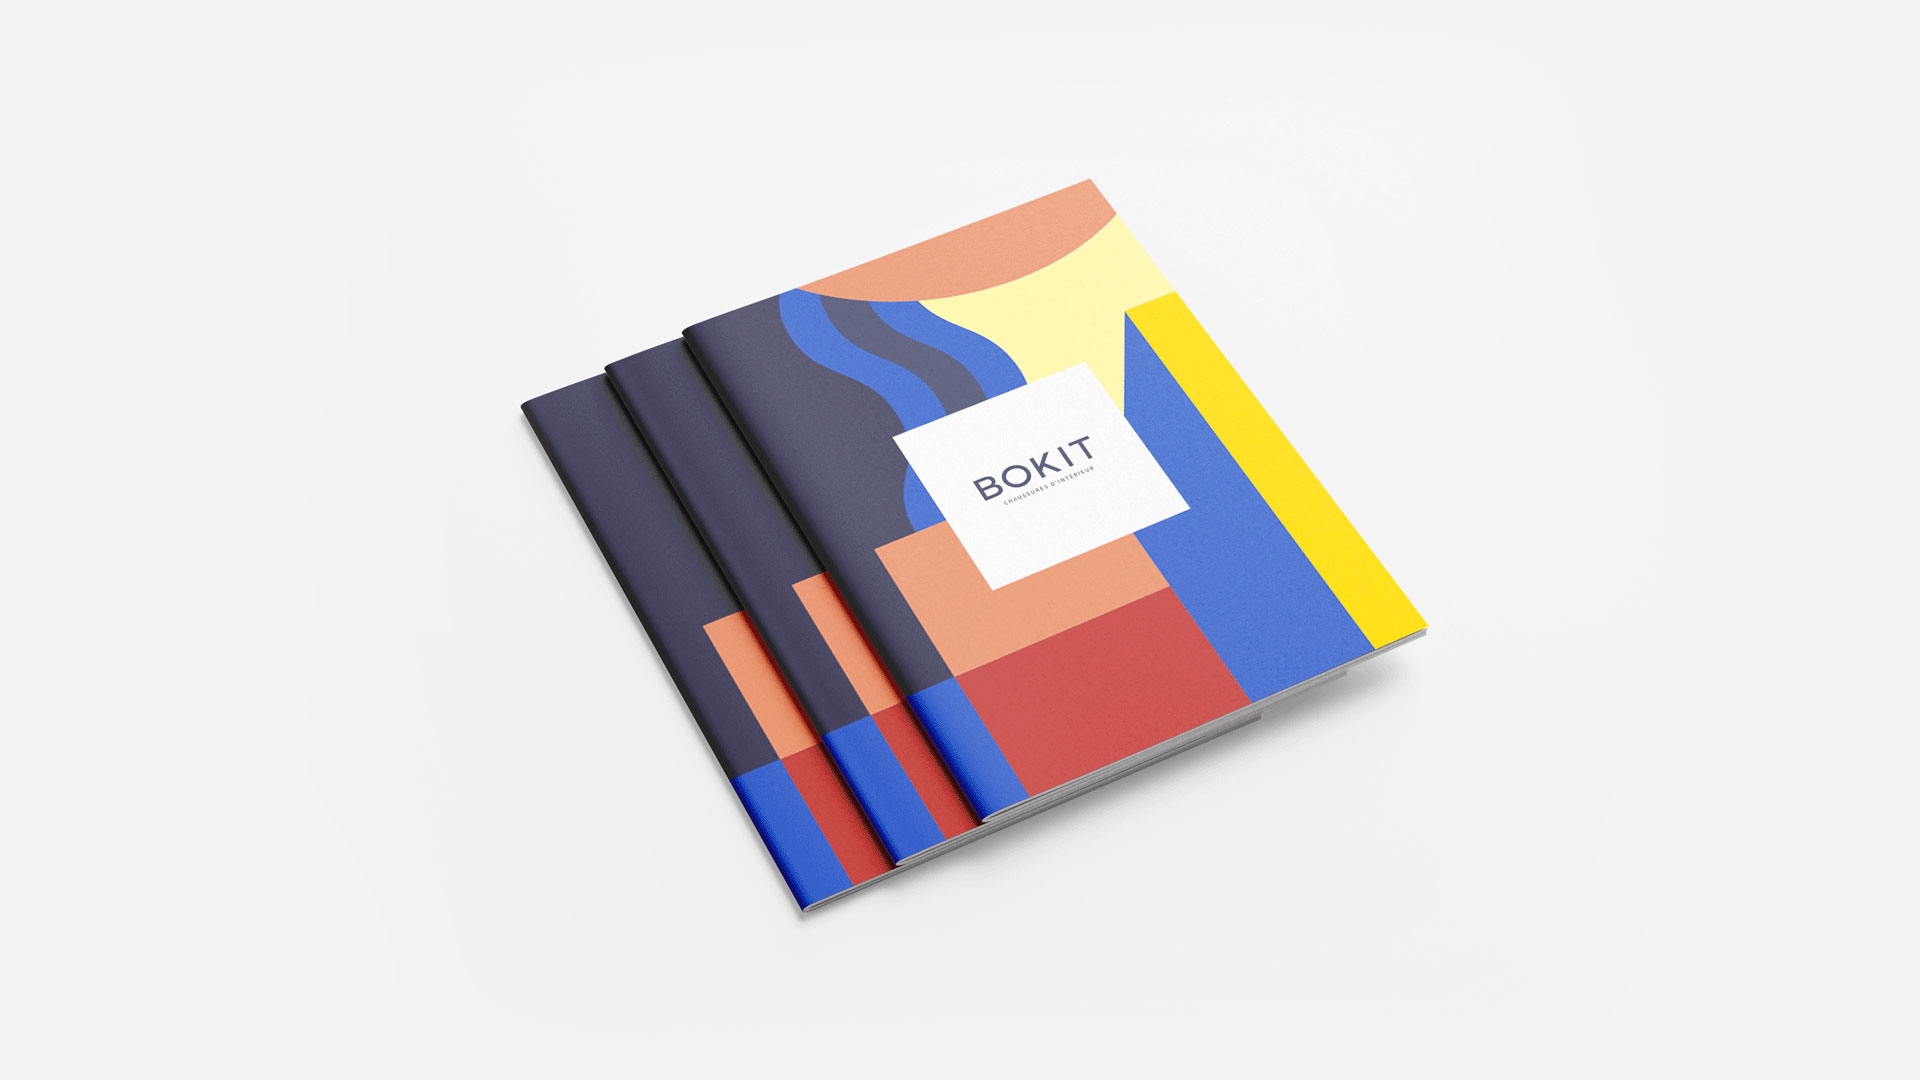 Bokit's beautiful notebooks